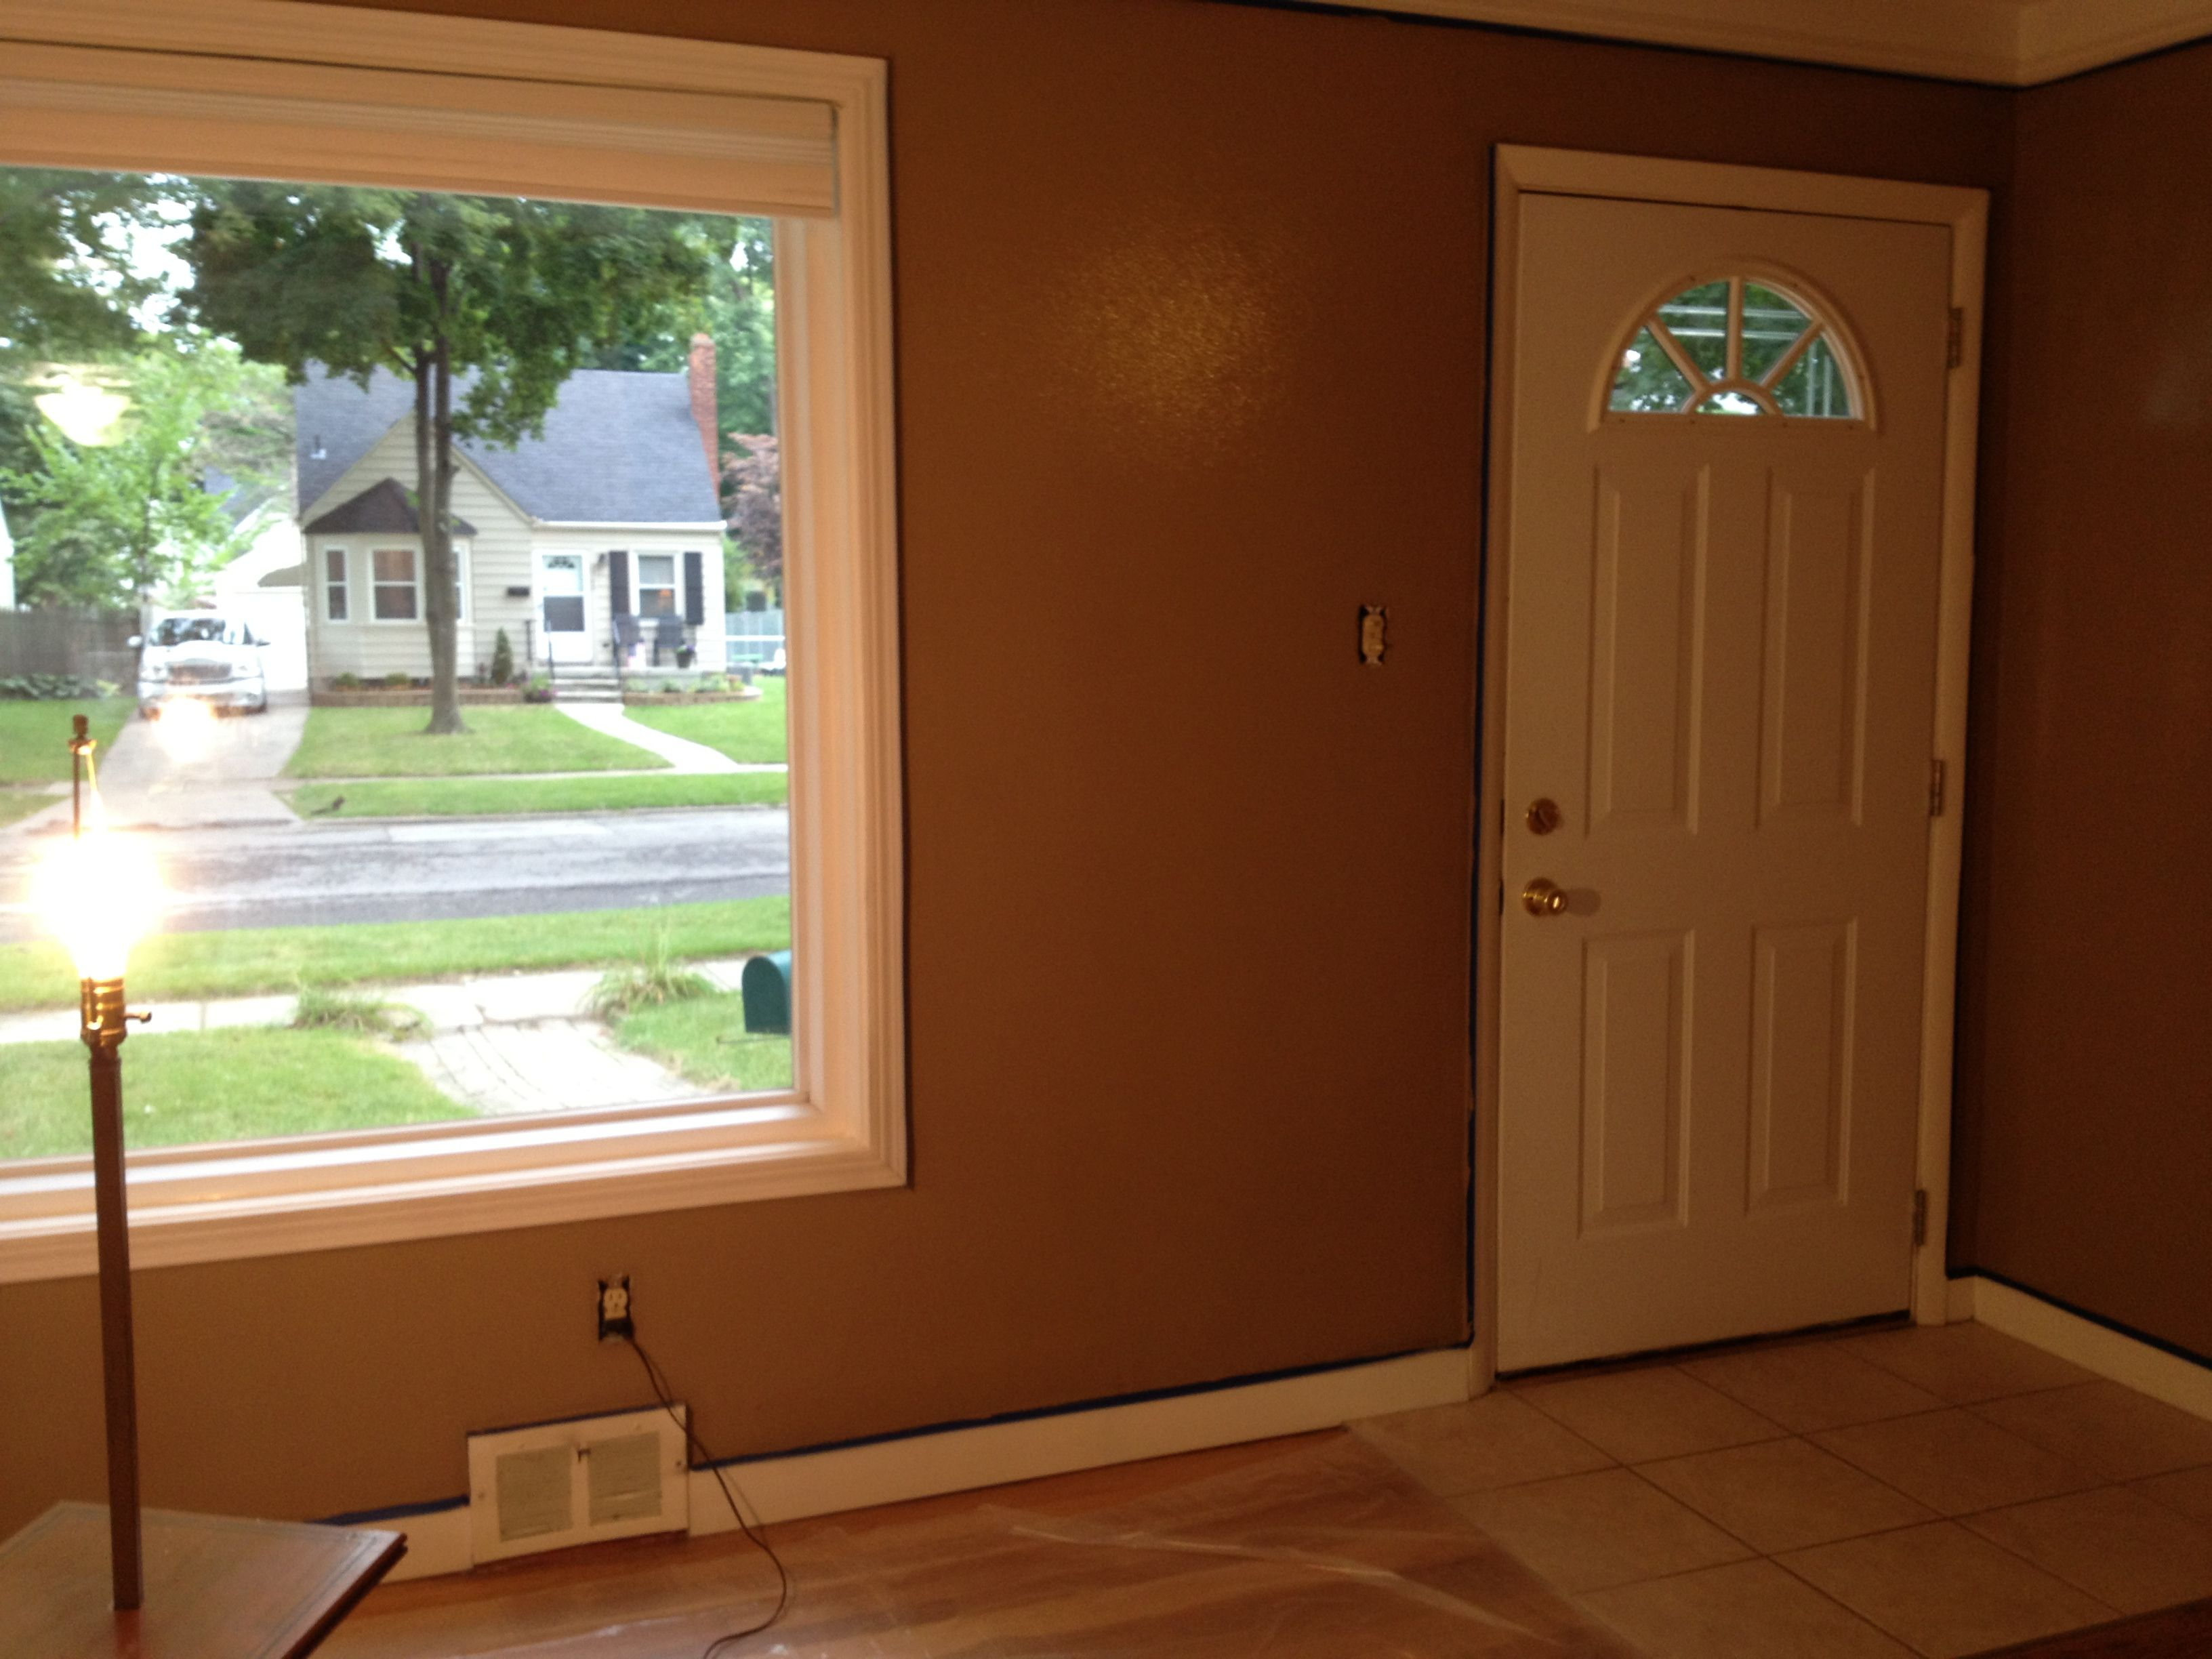 New living room color. Behr Toffee Crunch. | Room colors, Living room  color, New living room